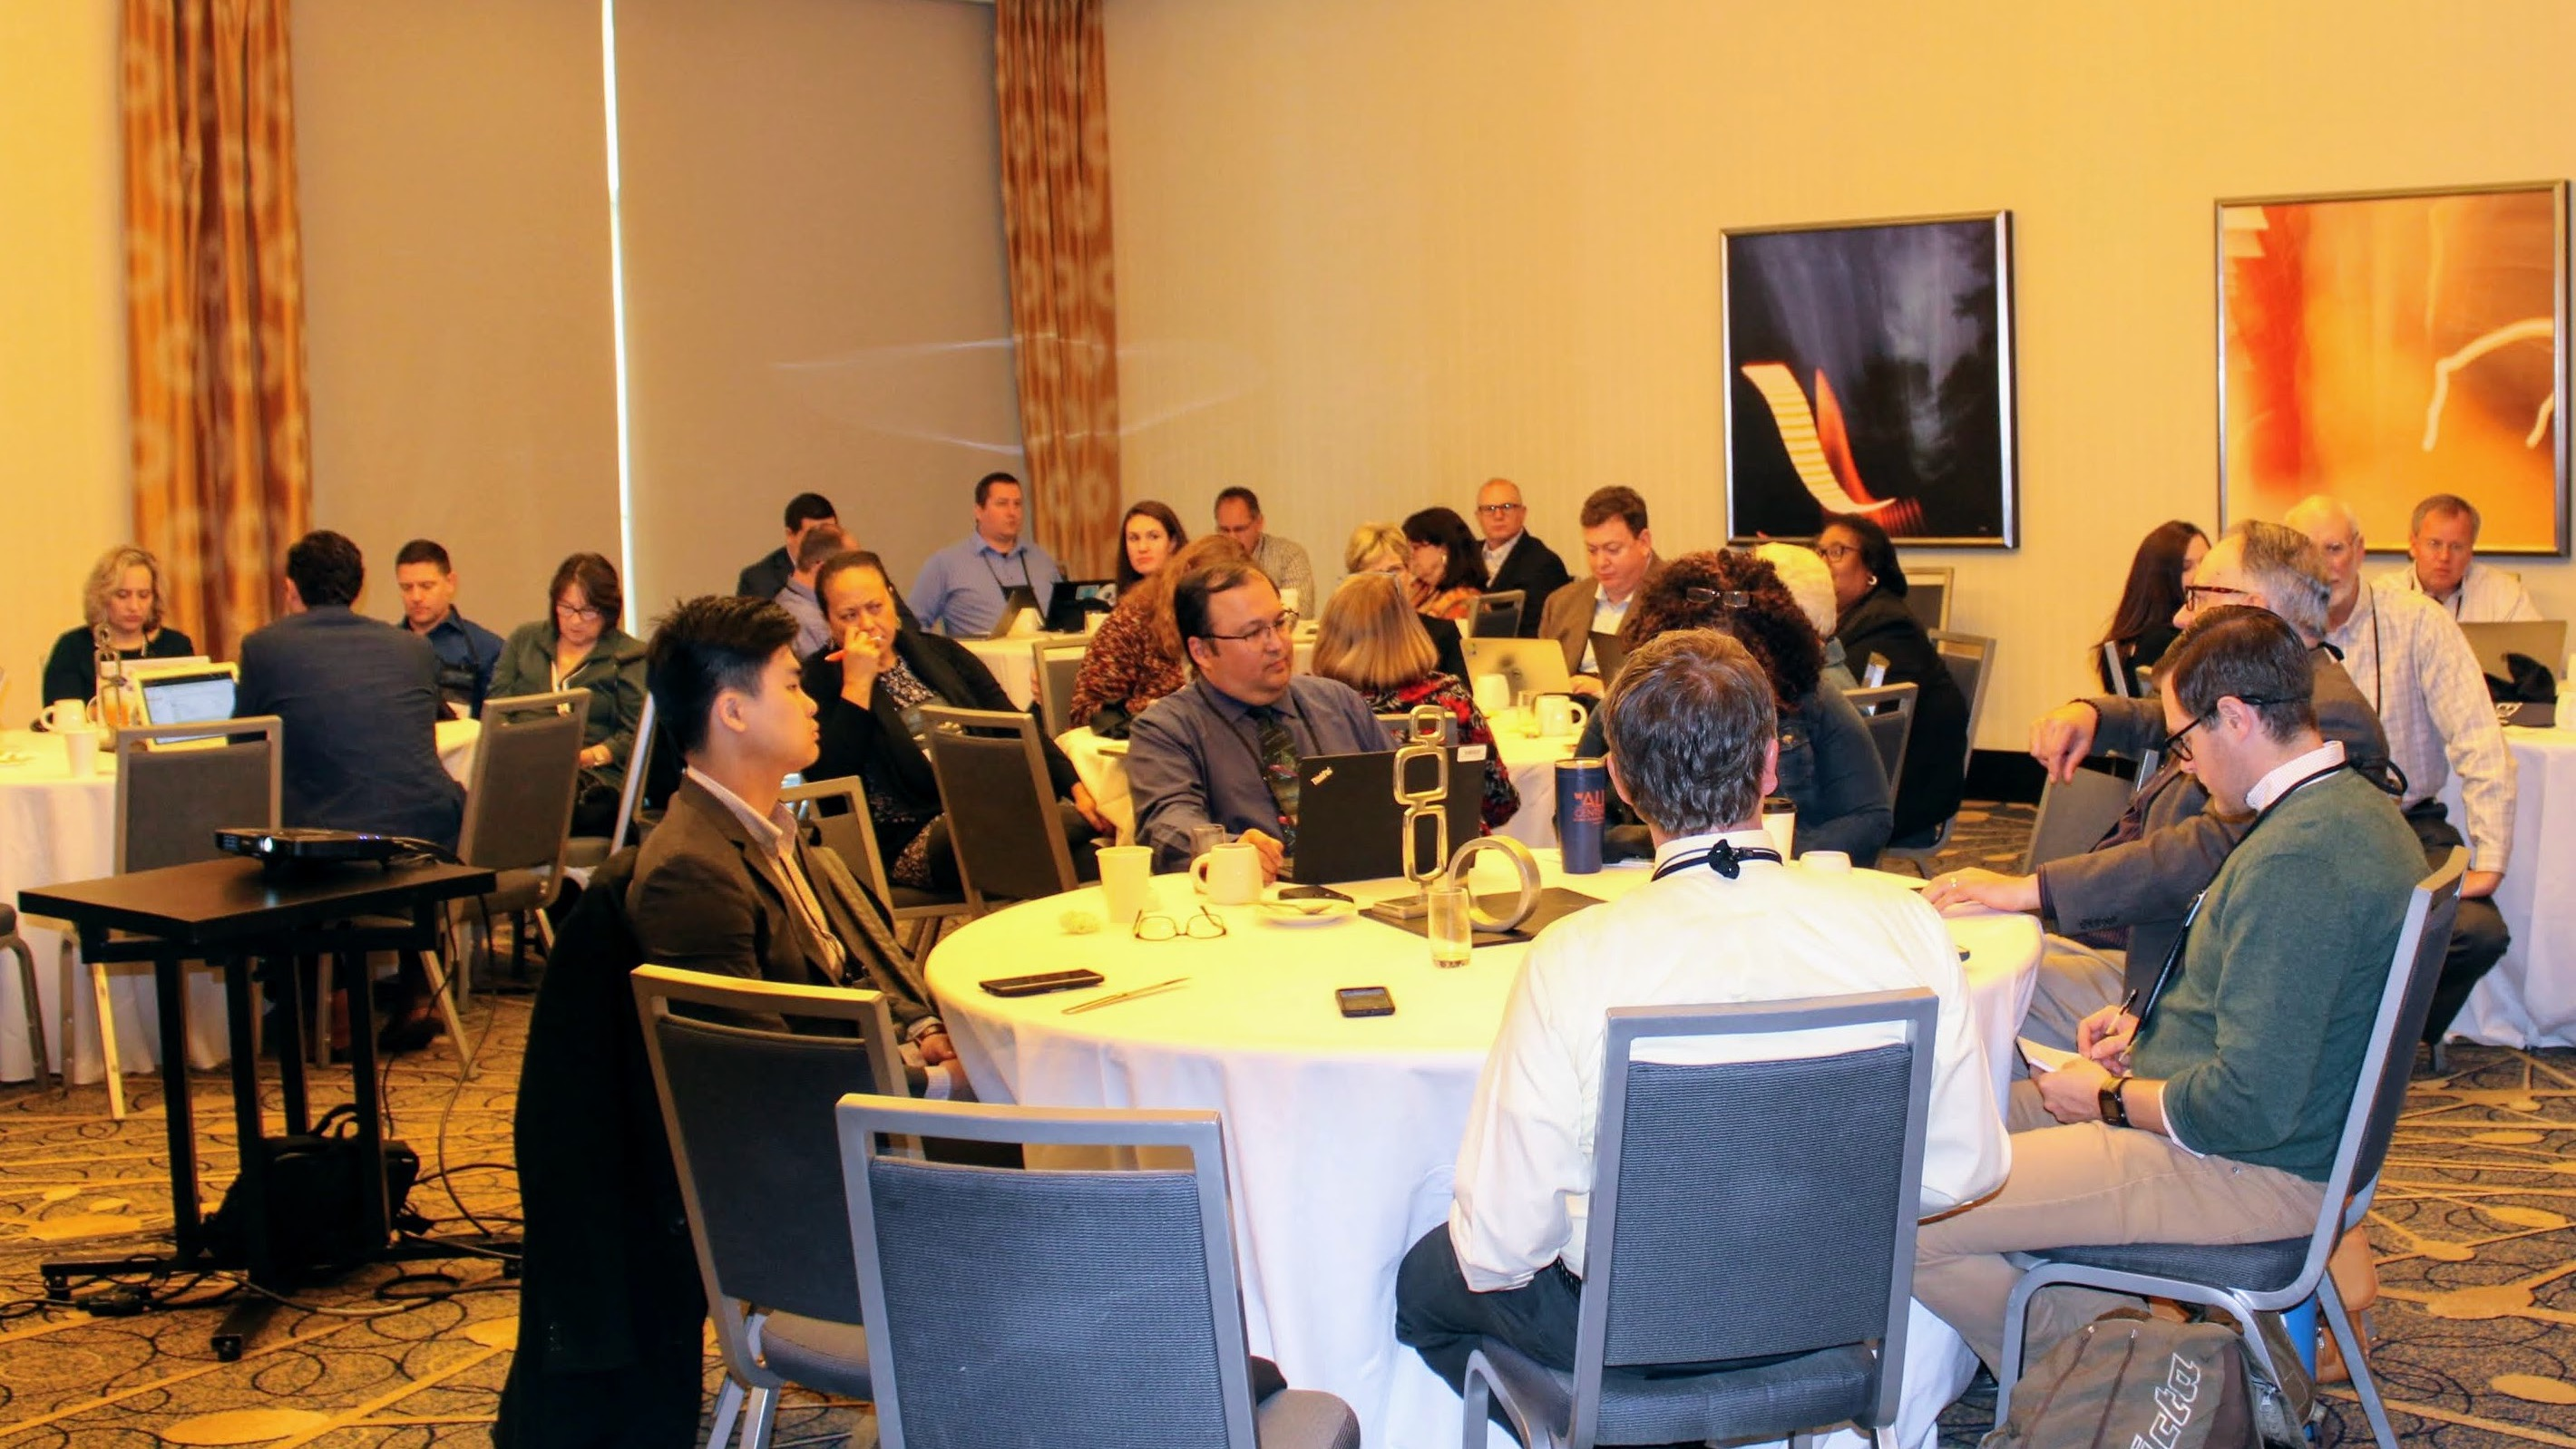 SETDA members around round table in breakout session